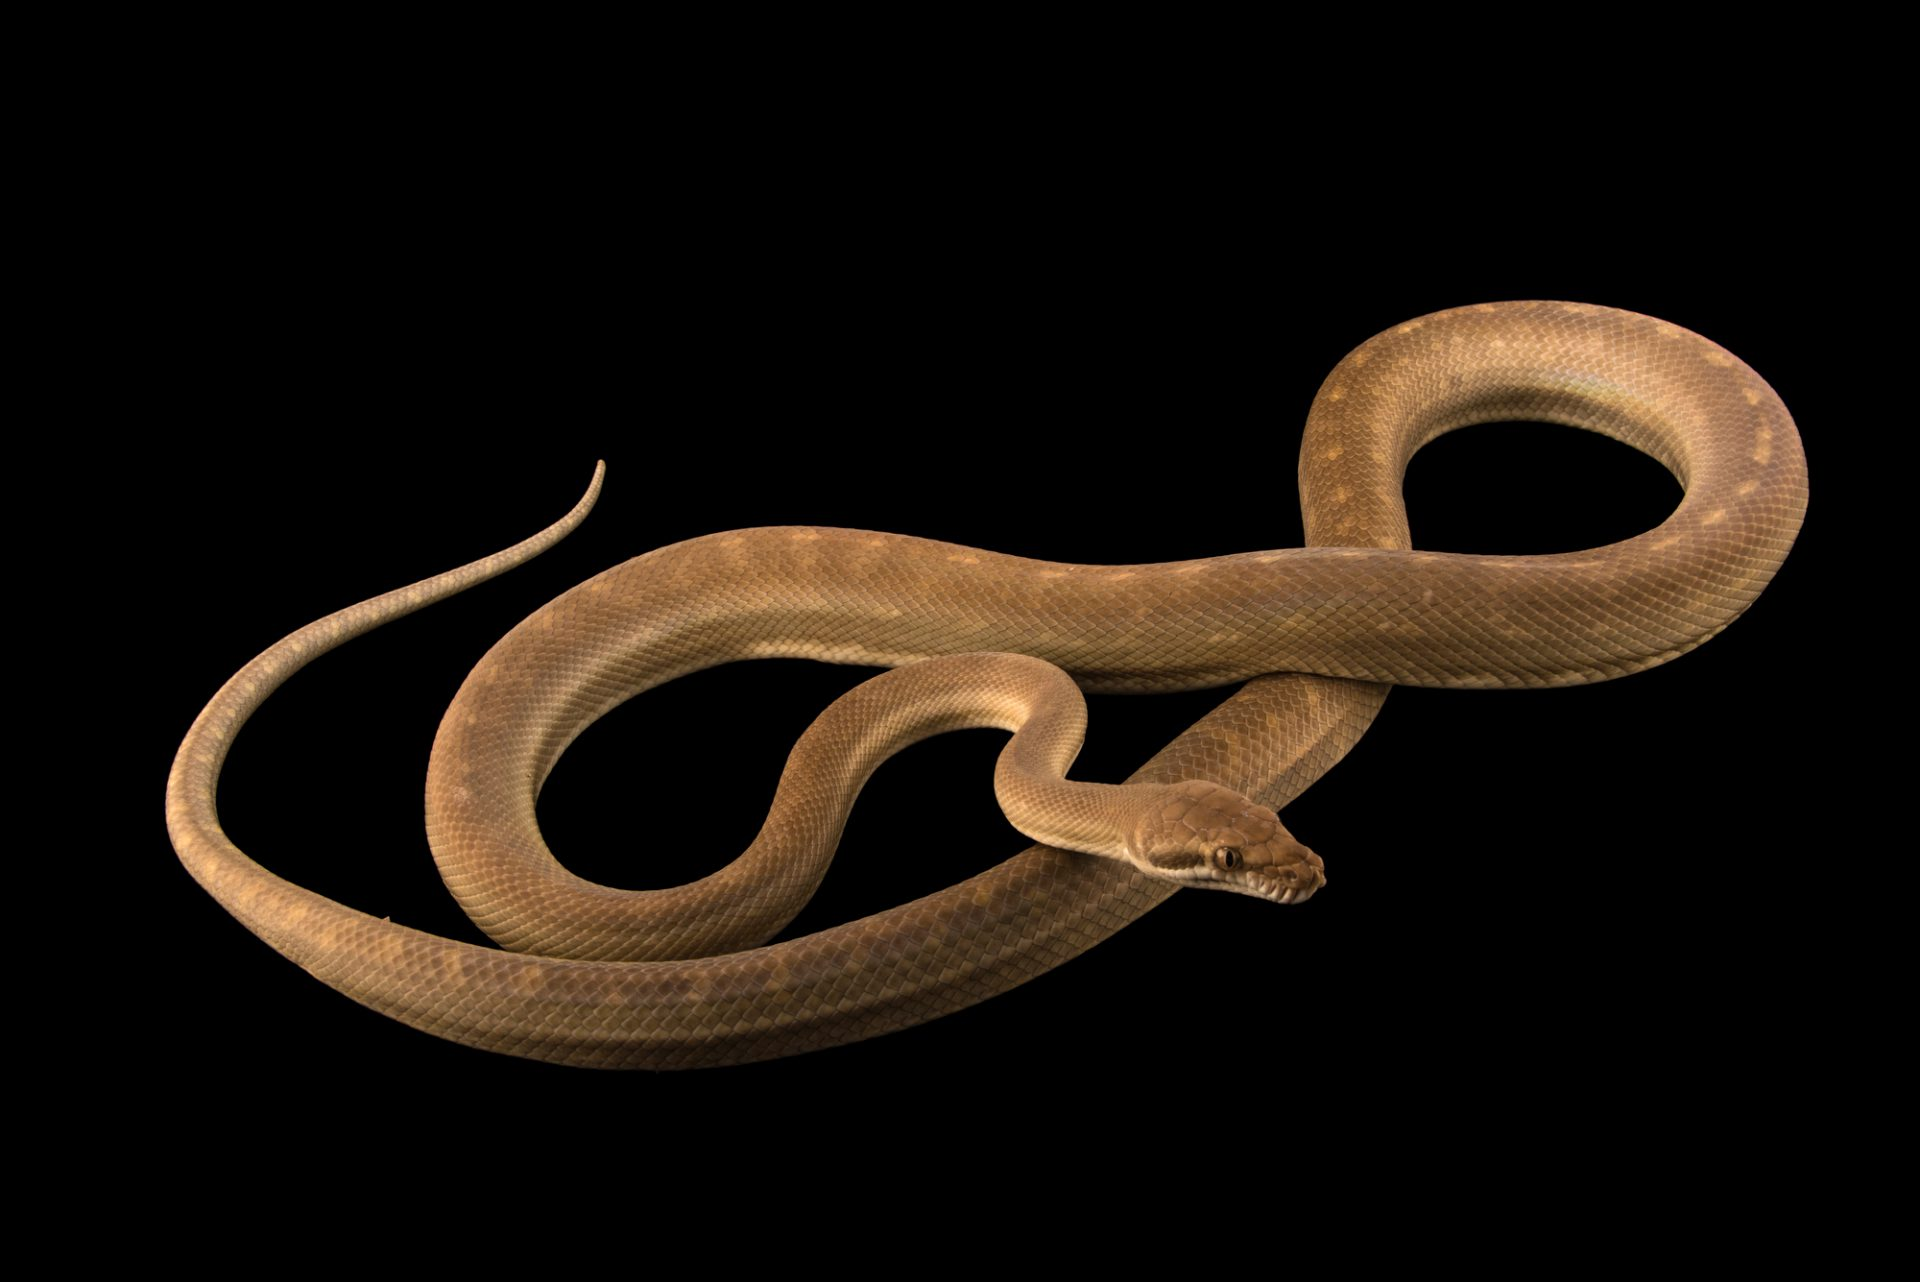 Tanimbar python (Simalia nauta) from a private collection.